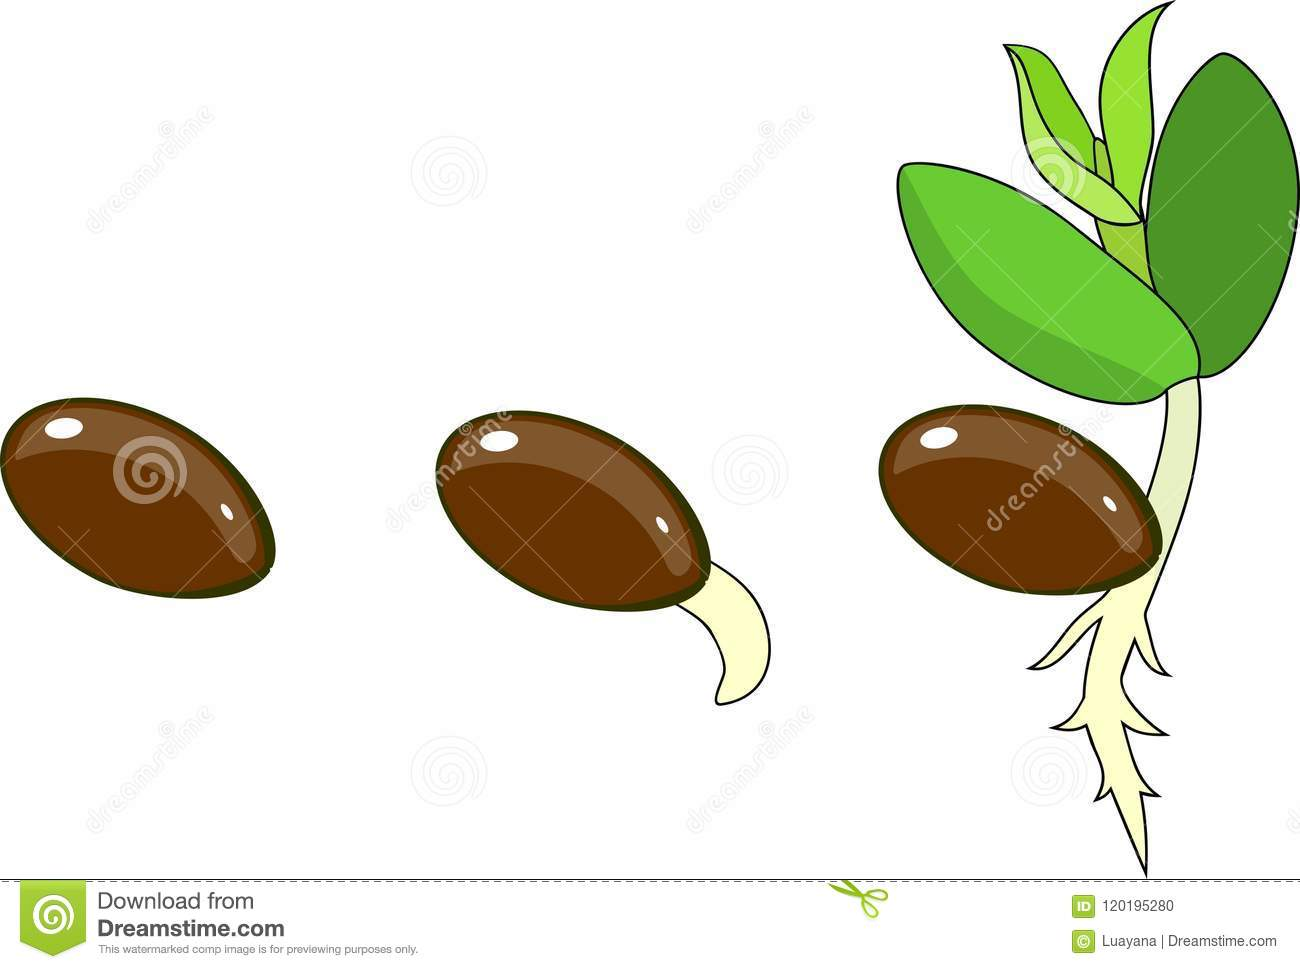 Stages Of Germination Of Seed Stock Vector